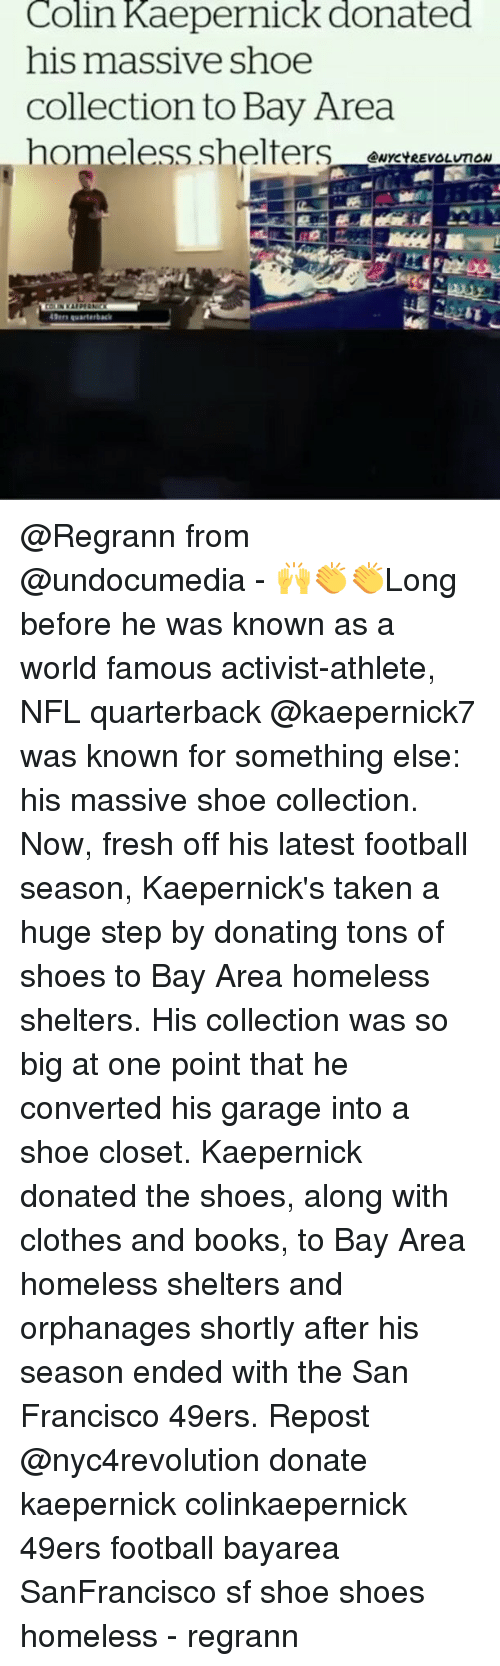 San Francisco 49ers: Colin Kaepernick donated  his massive shoe  Collection to Bay Area  homeless shelters  ANYCYREVOLUTON  49ers warterback @Regrann from @undocumedia - 🙌👏👏Long before he was known as a world famous activist-athlete, NFL quarterback @kaepernick7 was known for something else: his massive shoe collection. Now, fresh off his latest football season, Kaepernick's taken a huge step by donating tons of shoes to Bay Area homeless shelters. His collection was so big at one point that he converted his garage into a shoe closet. Kaepernick donated the shoes, along with clothes and books, to Bay Area homeless shelters and orphanages shortly after his season ended with the San Francisco 49ers. Repost @nyc4revolution donate kaepernick colinkaepernick 49ers football bayarea SanFrancisco sf shoe shoes homeless - regrann